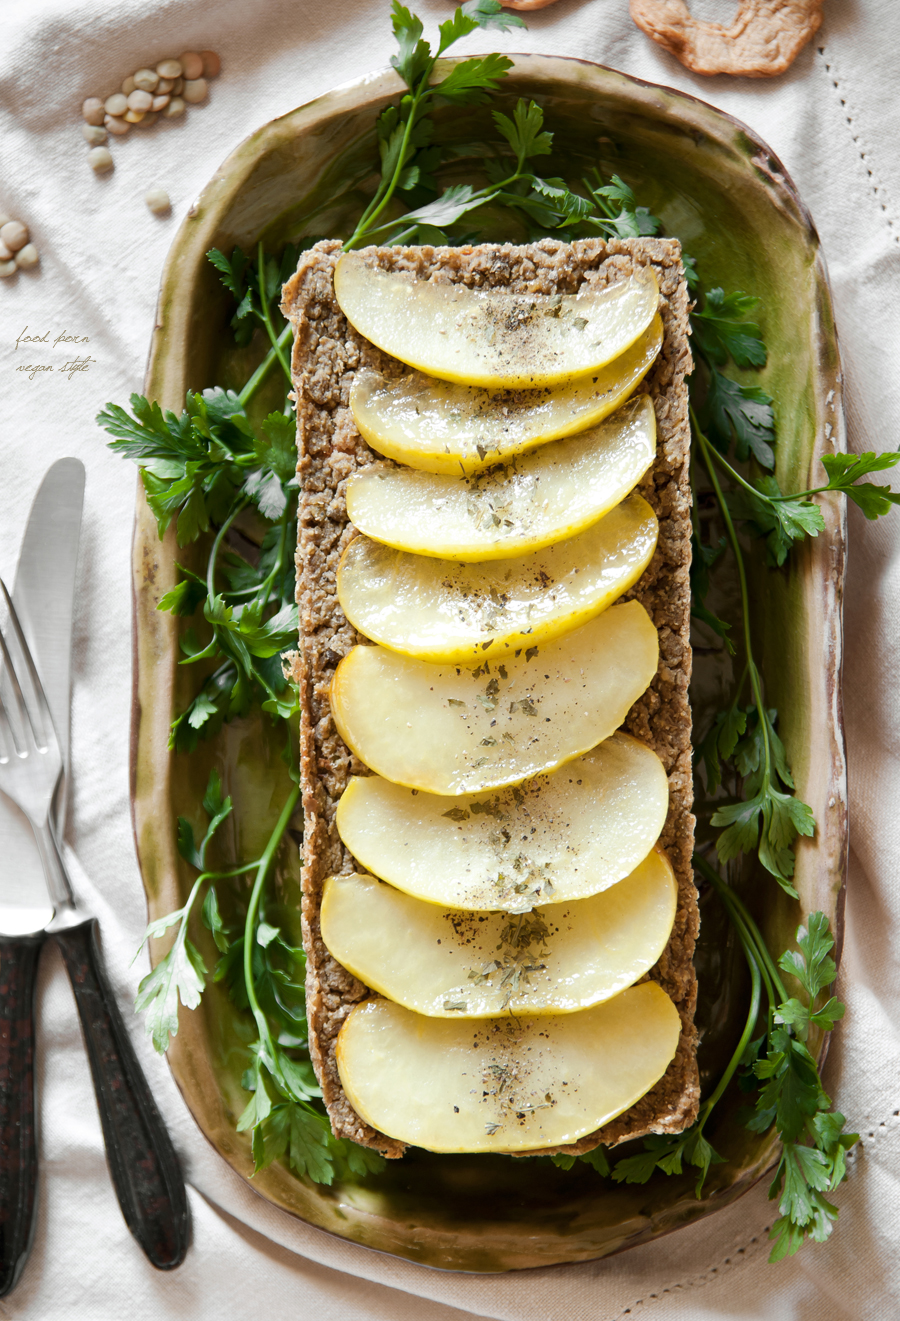 Vegan pate with green lentils, tarragon and apples